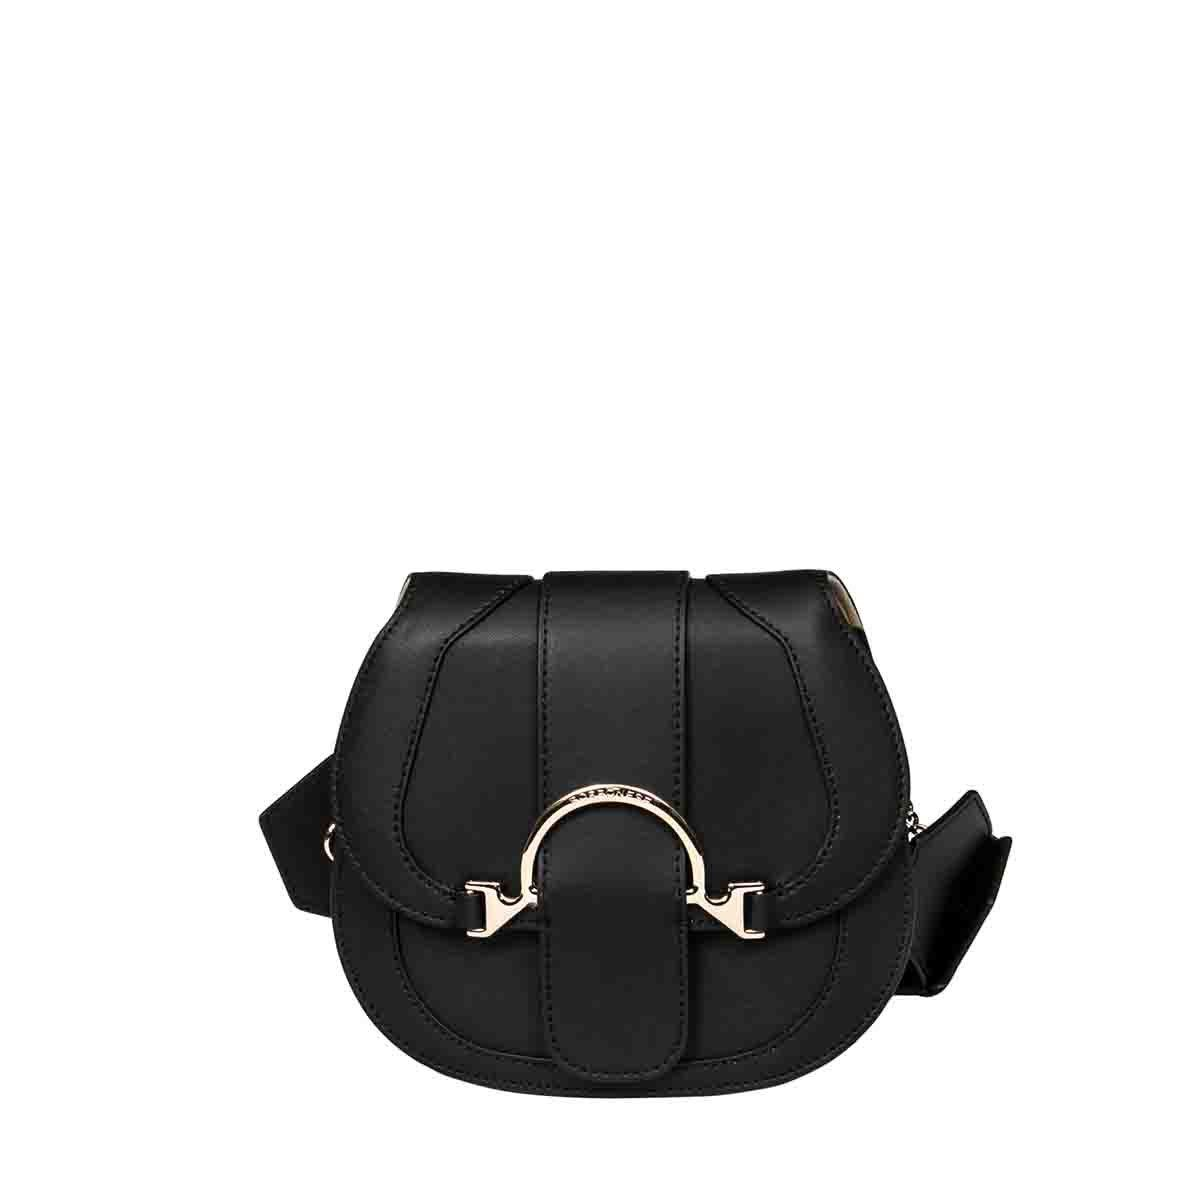 Borbonese BORBONESE WOMEN'S BLACK LEATHER SHOULDER BAG